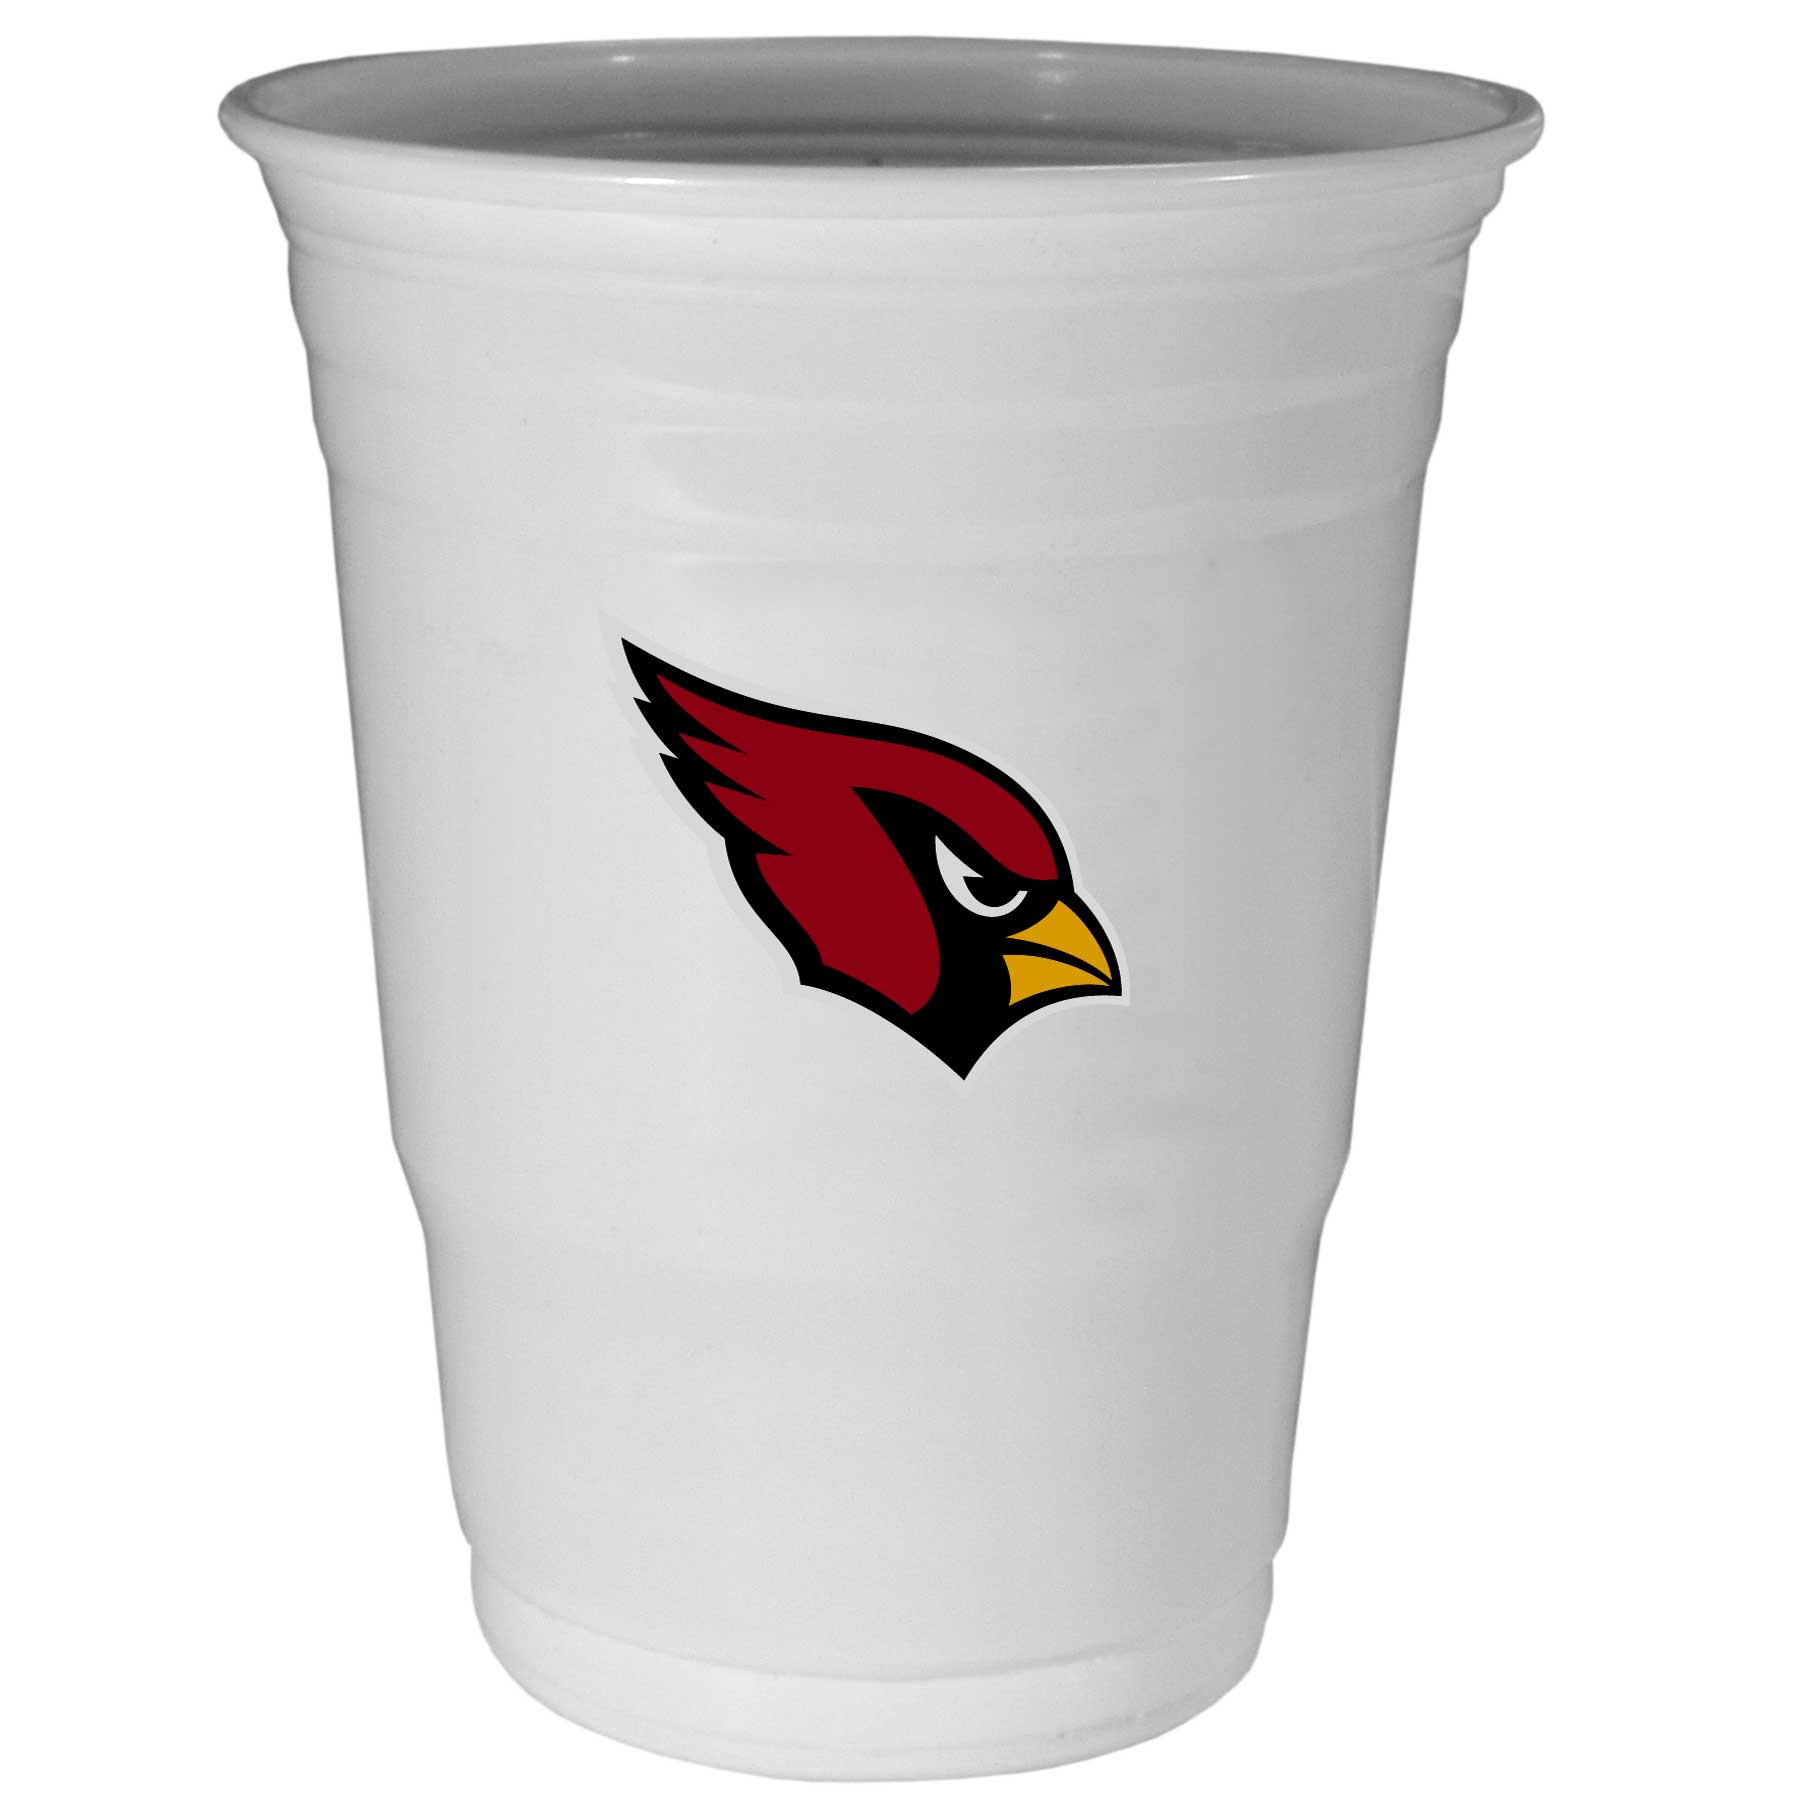 Arizona Cardinals Plastic Game Day Cups - Our 18 ounce game day cups are what every tailgating or backyard events needs! The cups feature a big Arizona Cardinals logo so you can show off your team pride. The popular 18 ounce size is perfect for drinks or ping pong balls! Sold in sleeves of 18 cups.